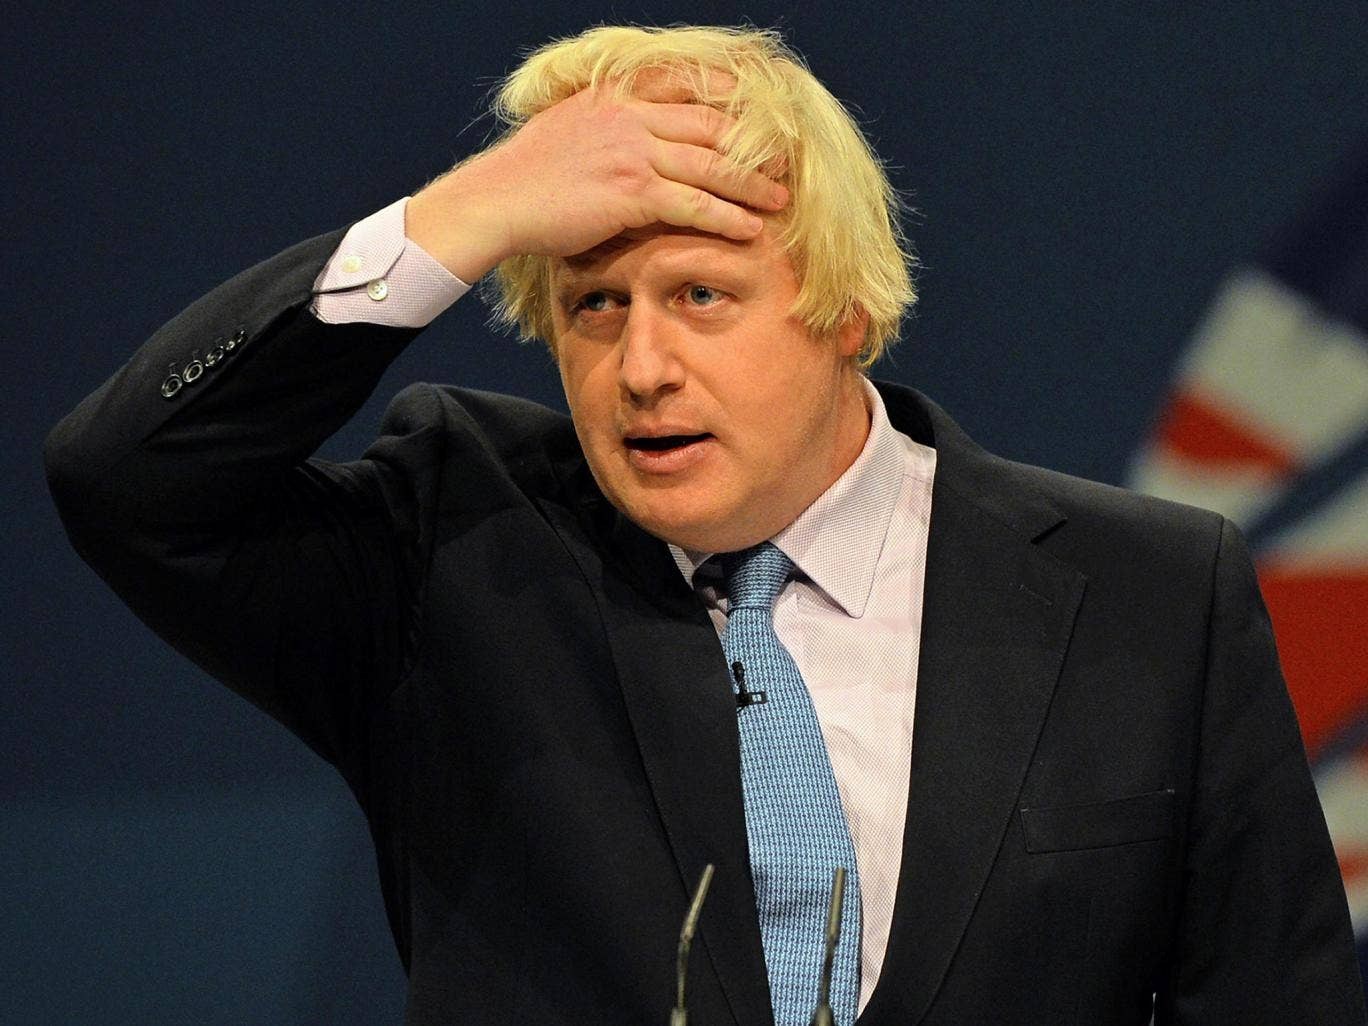 London Mayor Boris Johnson has said that he does not want to become the Tory party leader